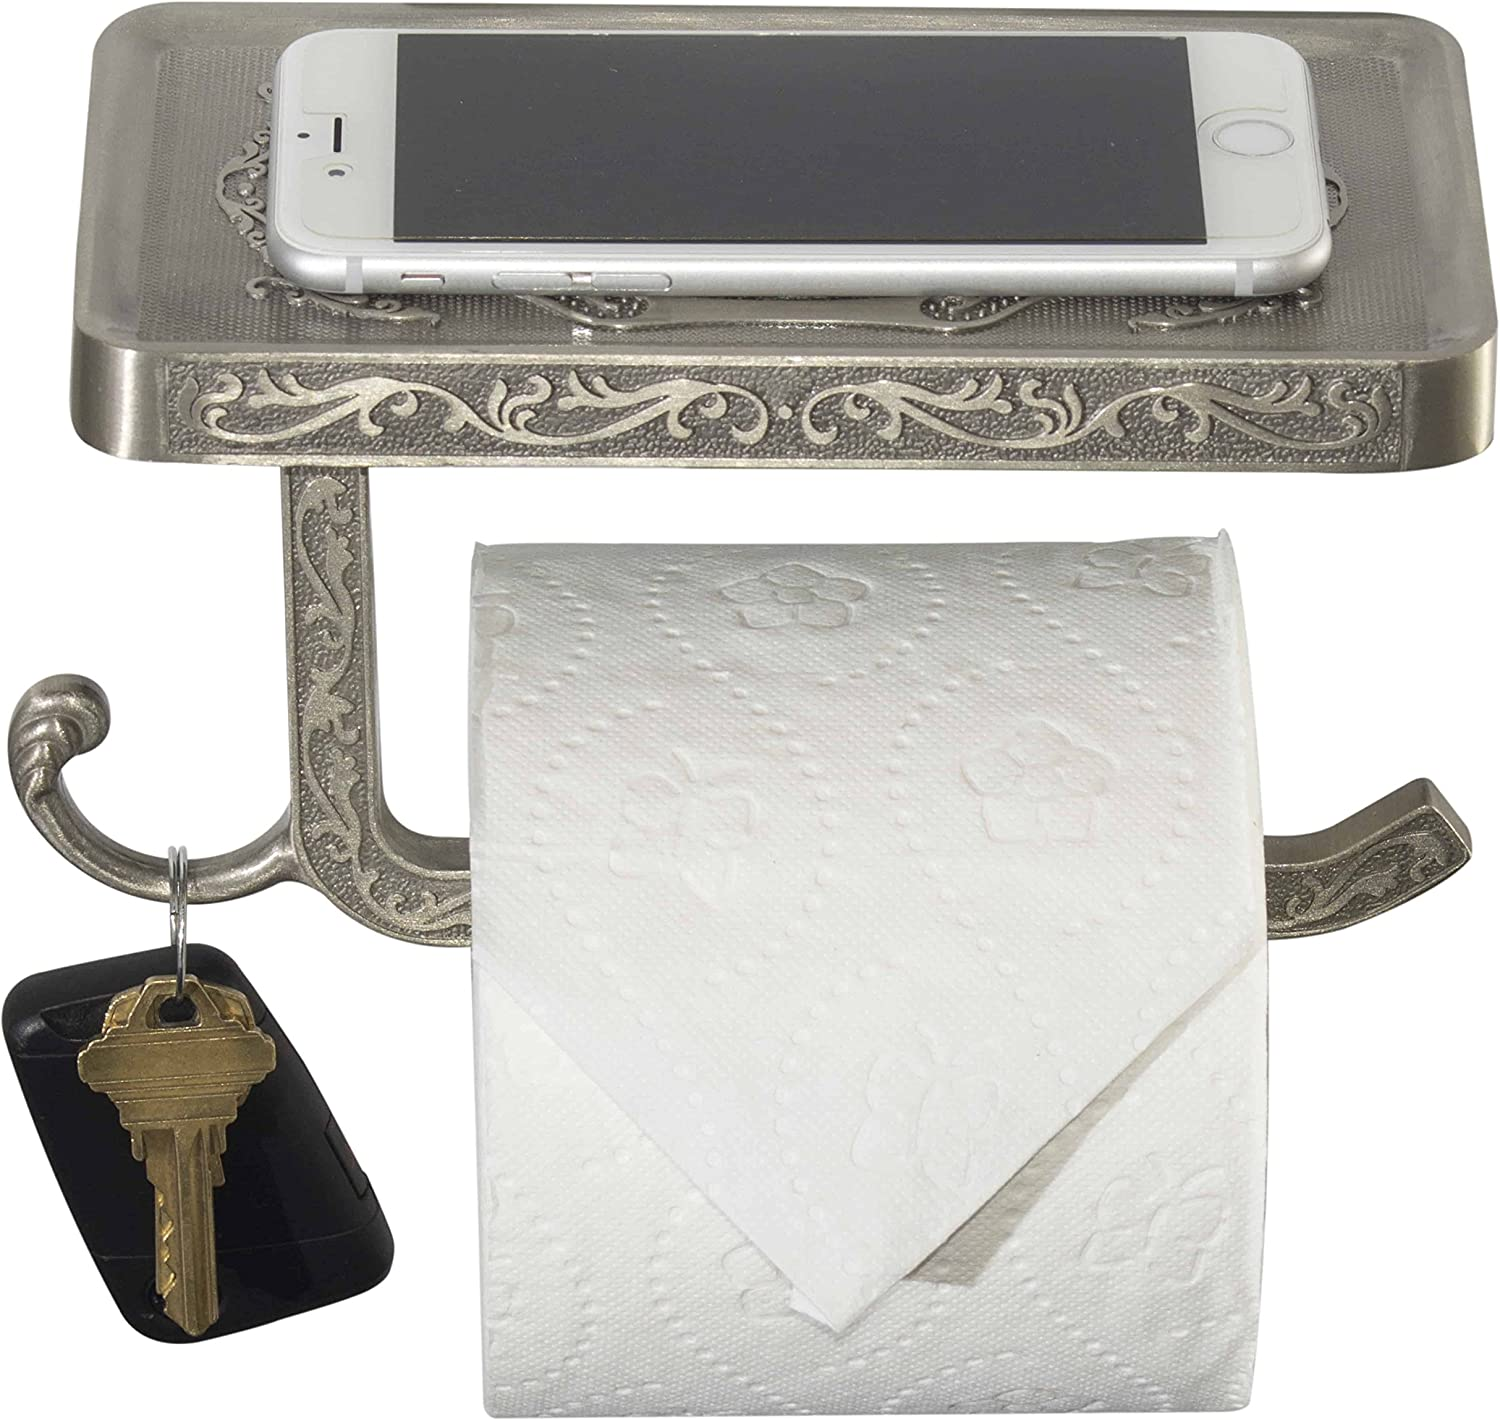 Neater Nest Reversible Toilet Paper Holder with Phone Shelf, Decor Style (Brushed Nickel)